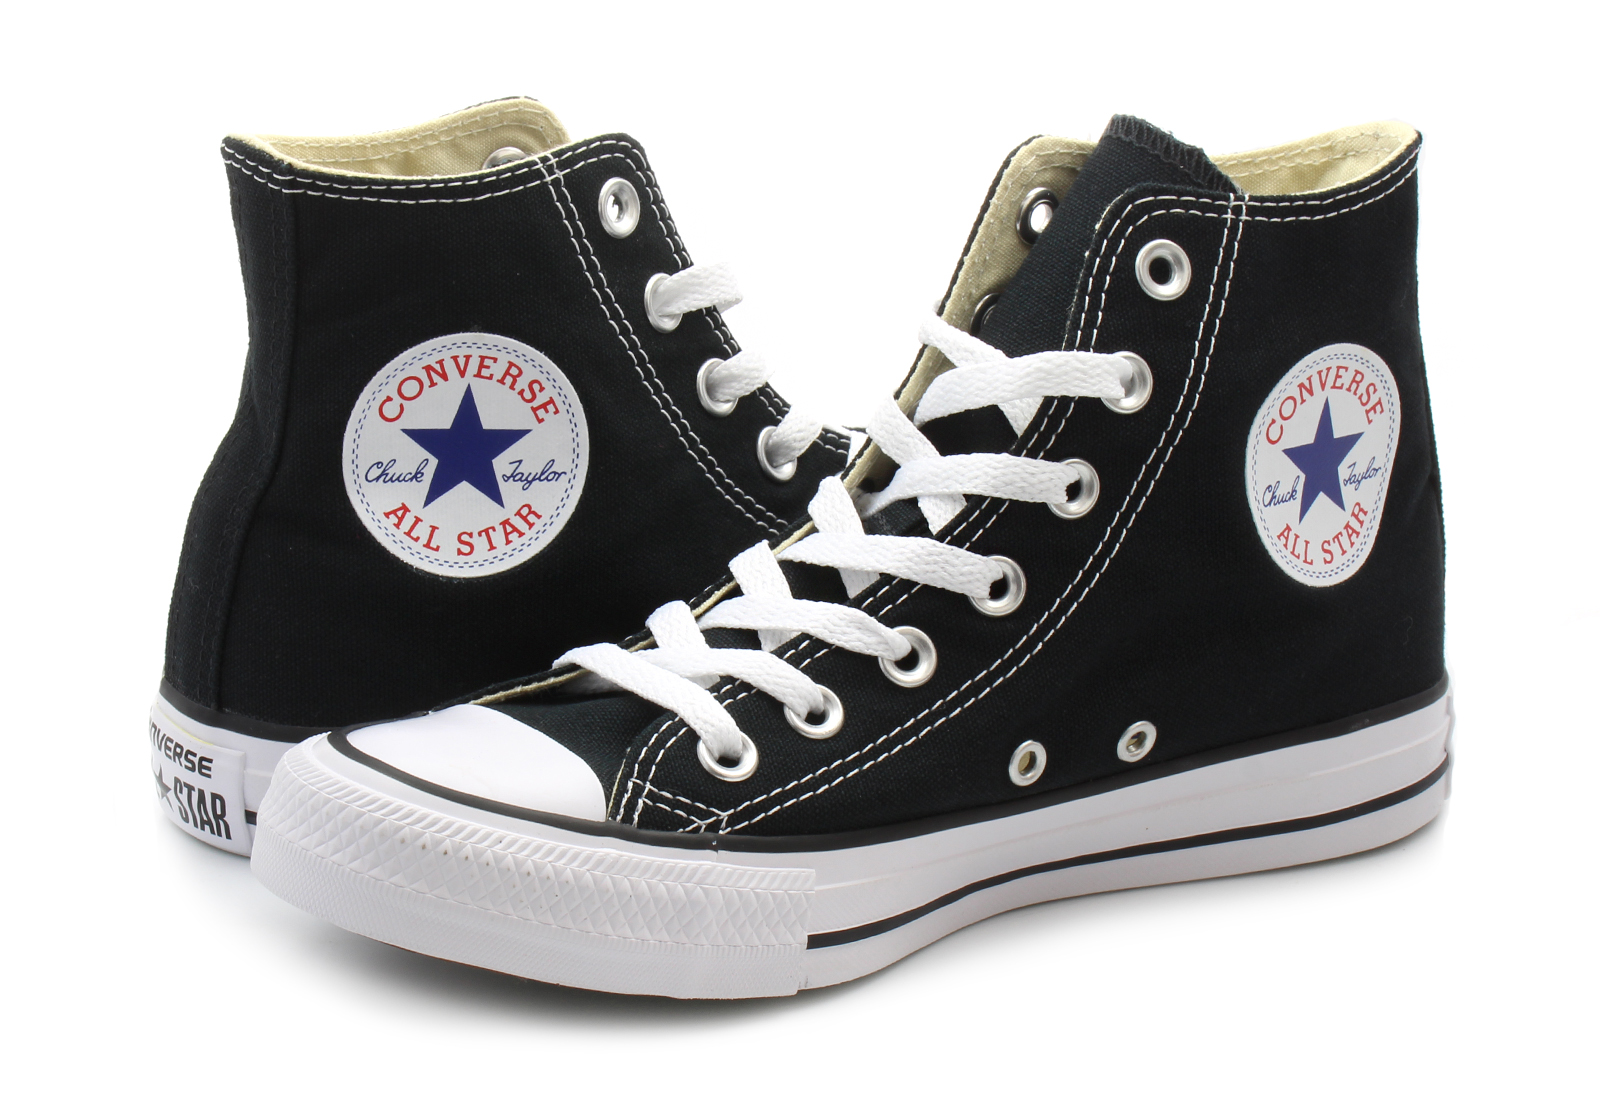 Converse Chuck Taylor All Star Core Hi Sneaker M9160C Black